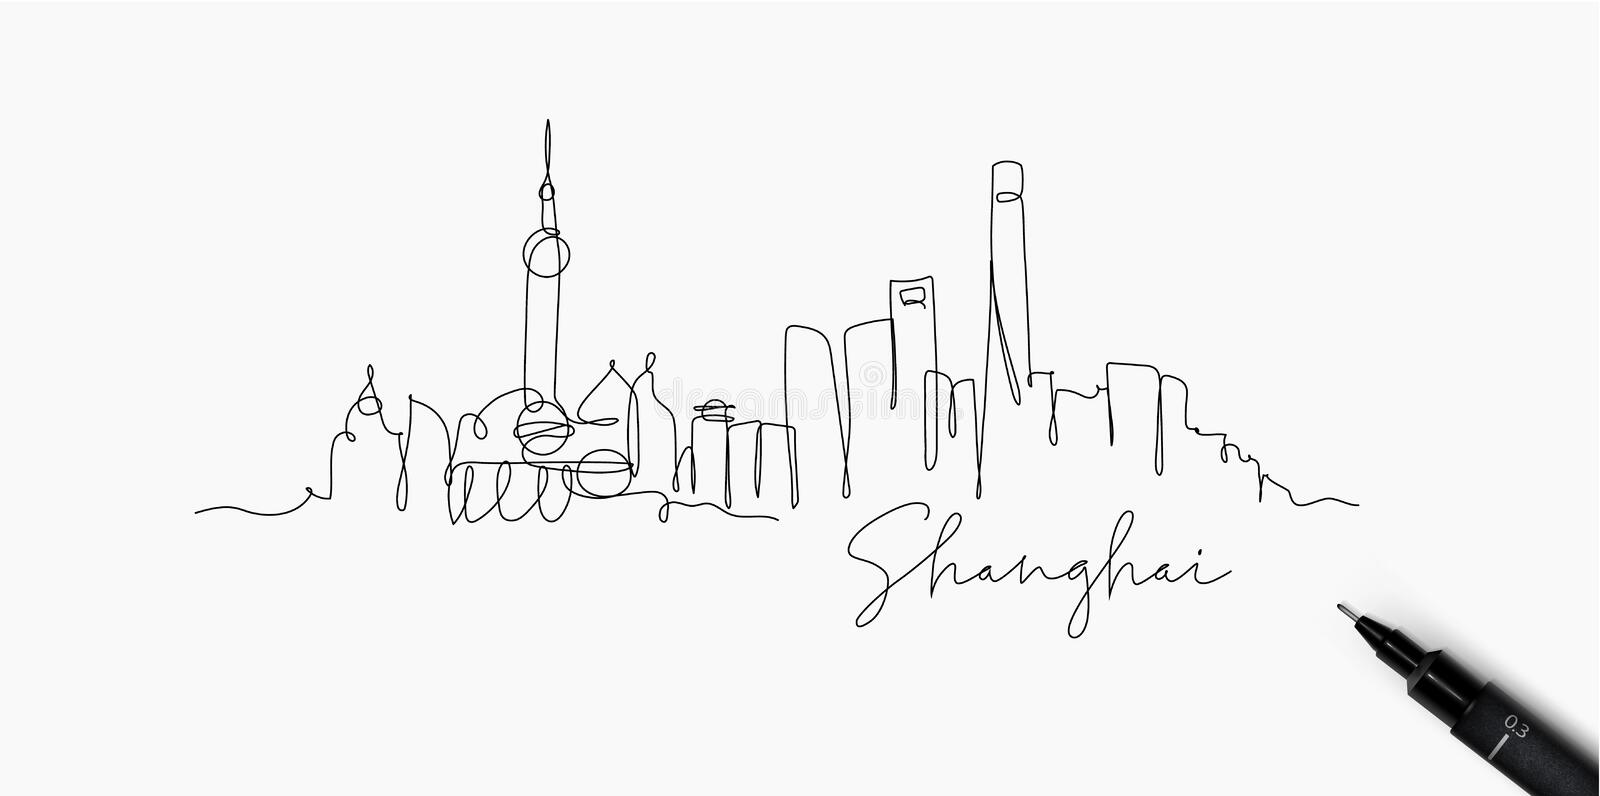 Pen line silhouette Shanghai. City silhouette Shanghai in pen line style drawing with black lines on white background royalty free illustration